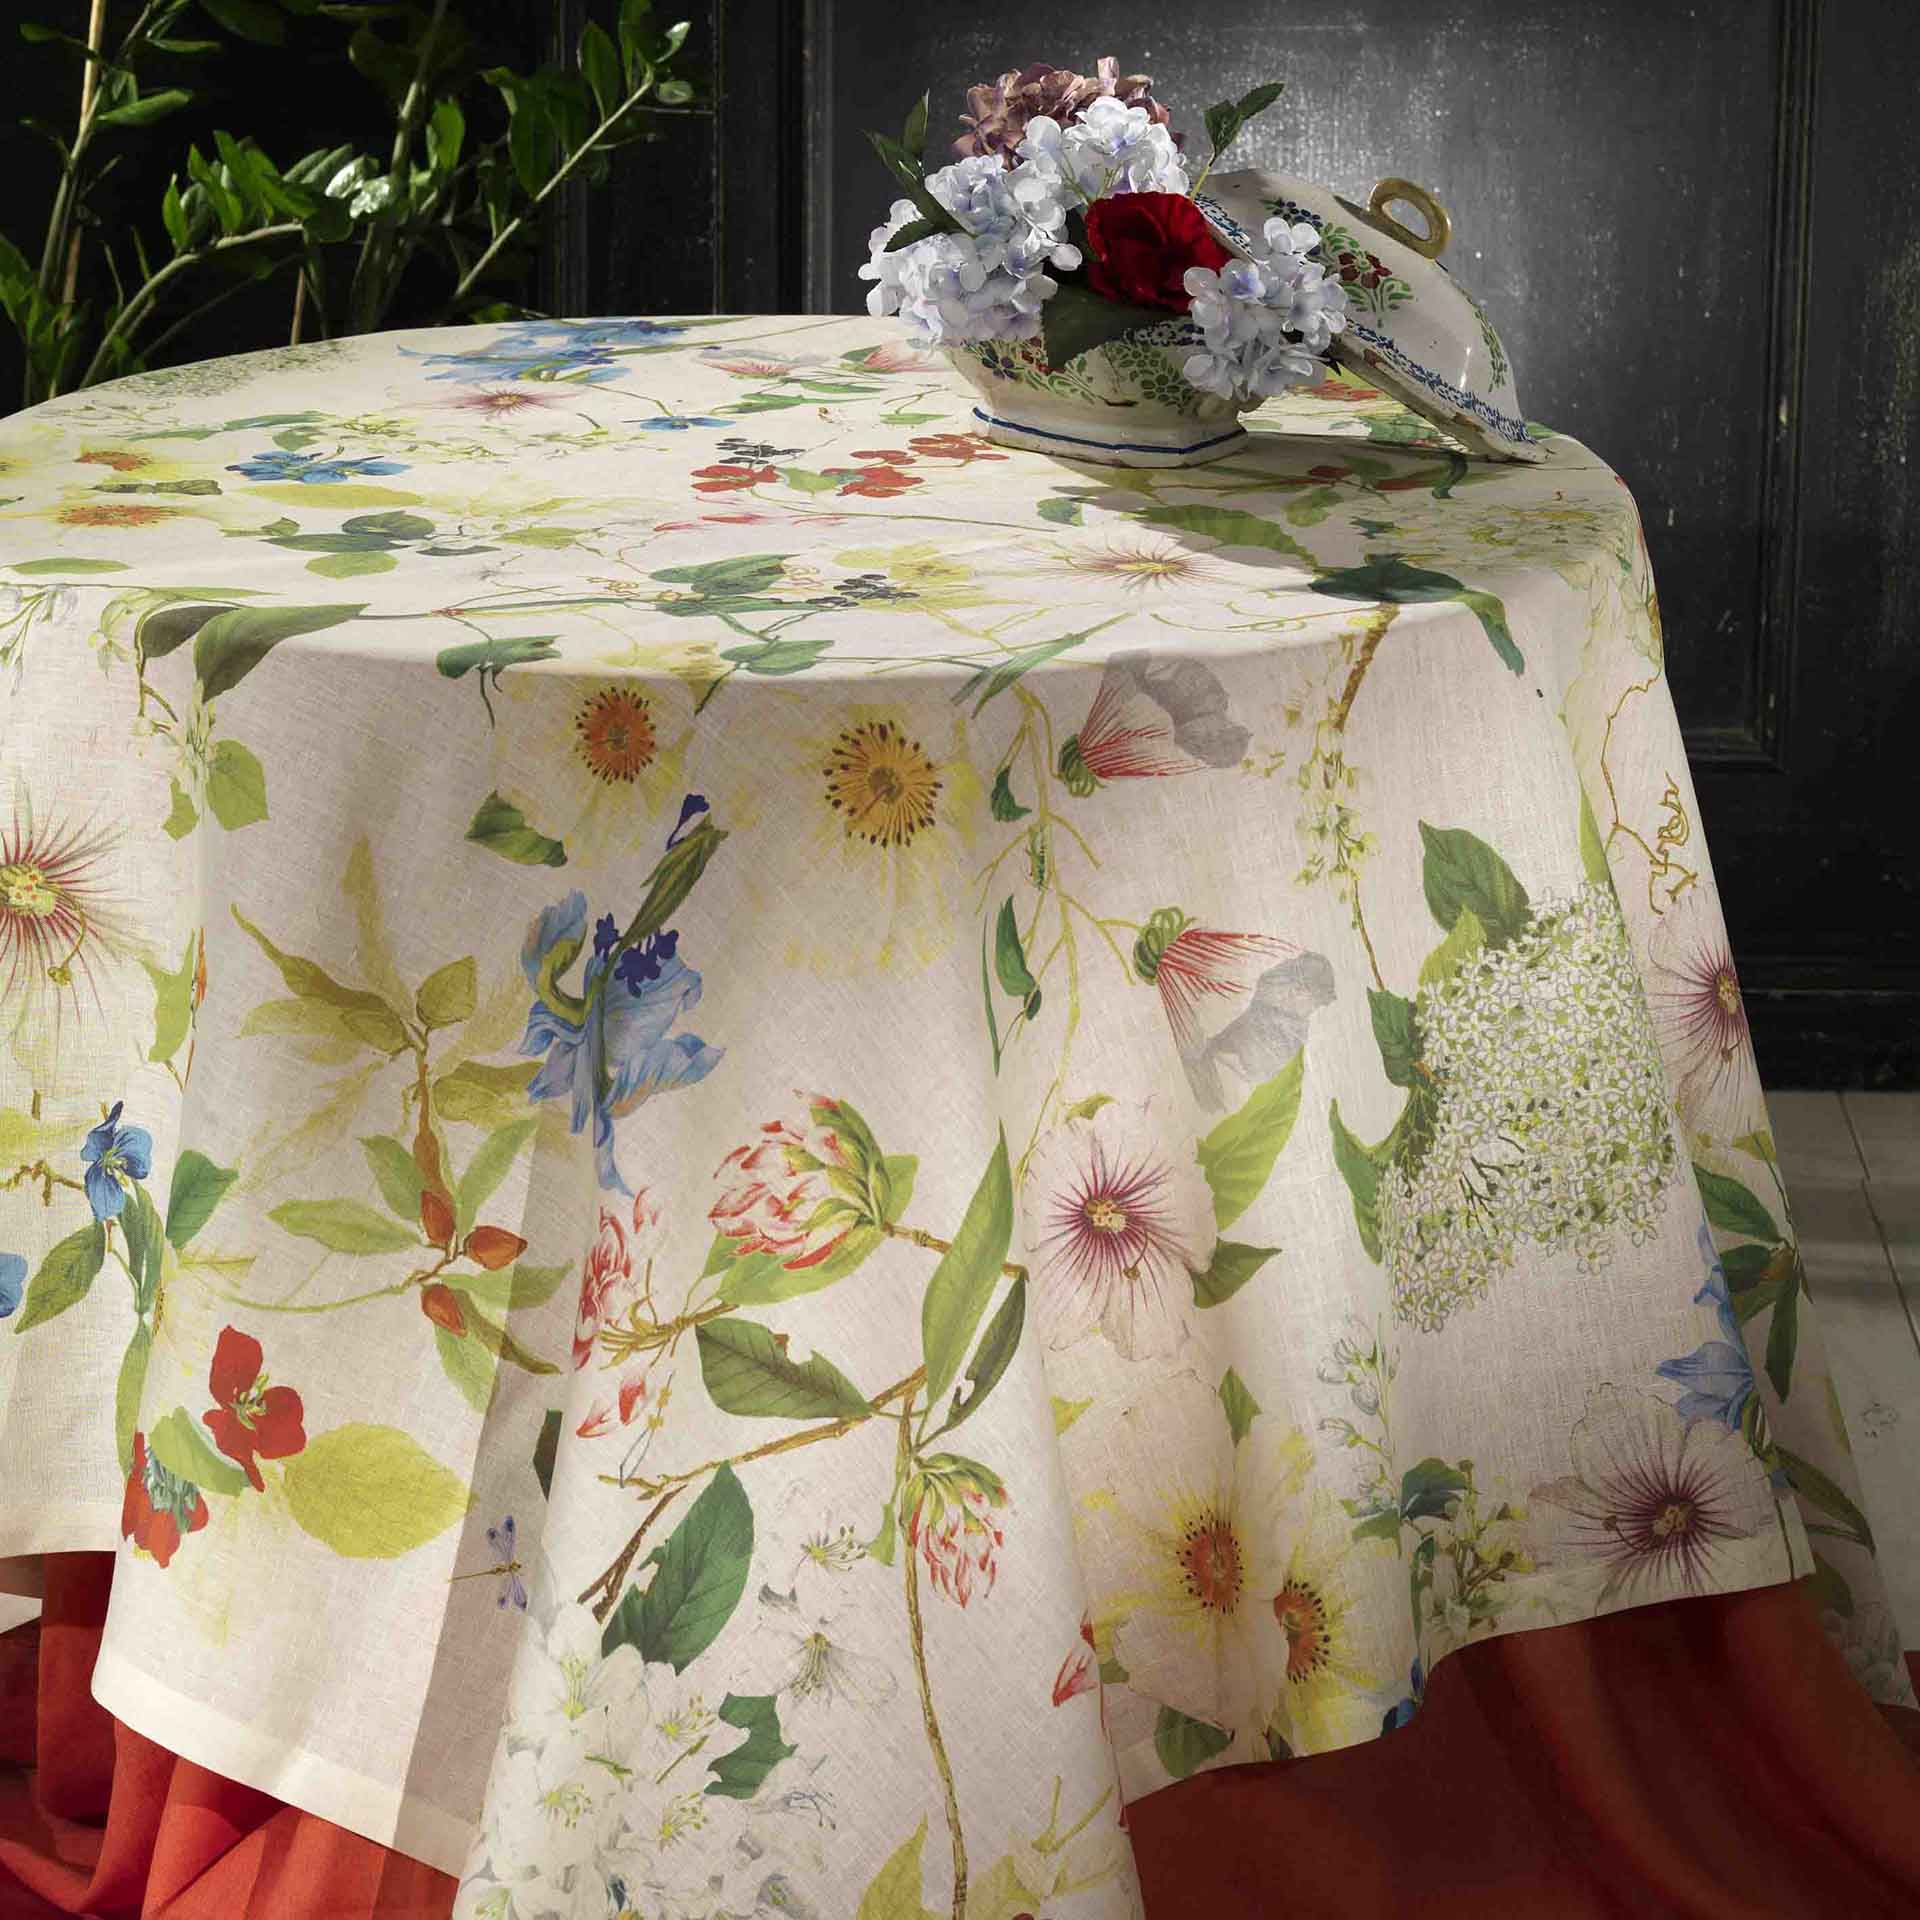 Ibisco Linen Tablecloth Sizes 170x170cm, 160x230cm, 170x270cm, 170x310cm, 170cm Round